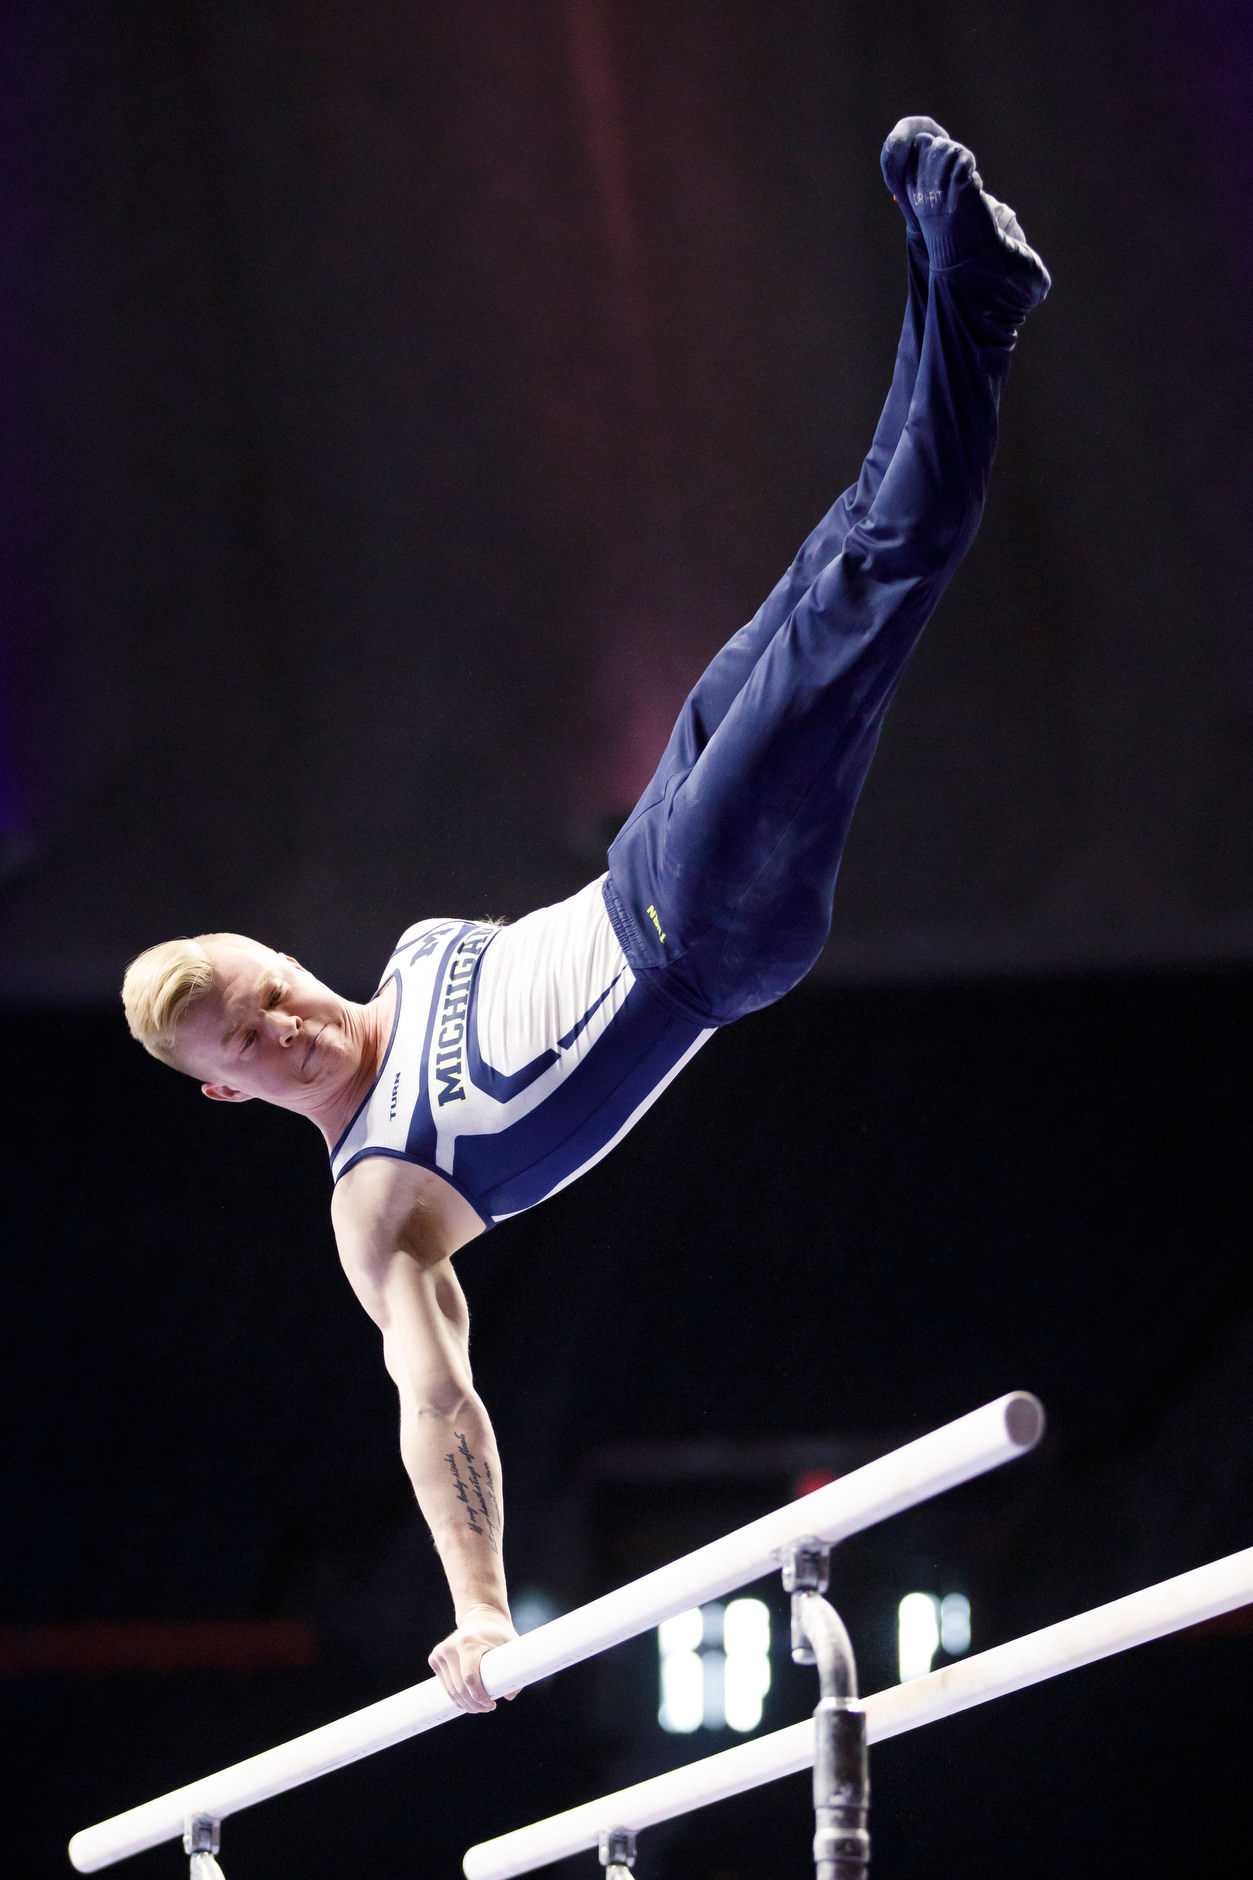 Michigan's Cameron Bock competes on parallel bars at the NCAA Men's Gymnastics Championships on Friday, April 19, 2019, at the State Farm Center in Champaign, Illinois. (Photo by James Brosher)